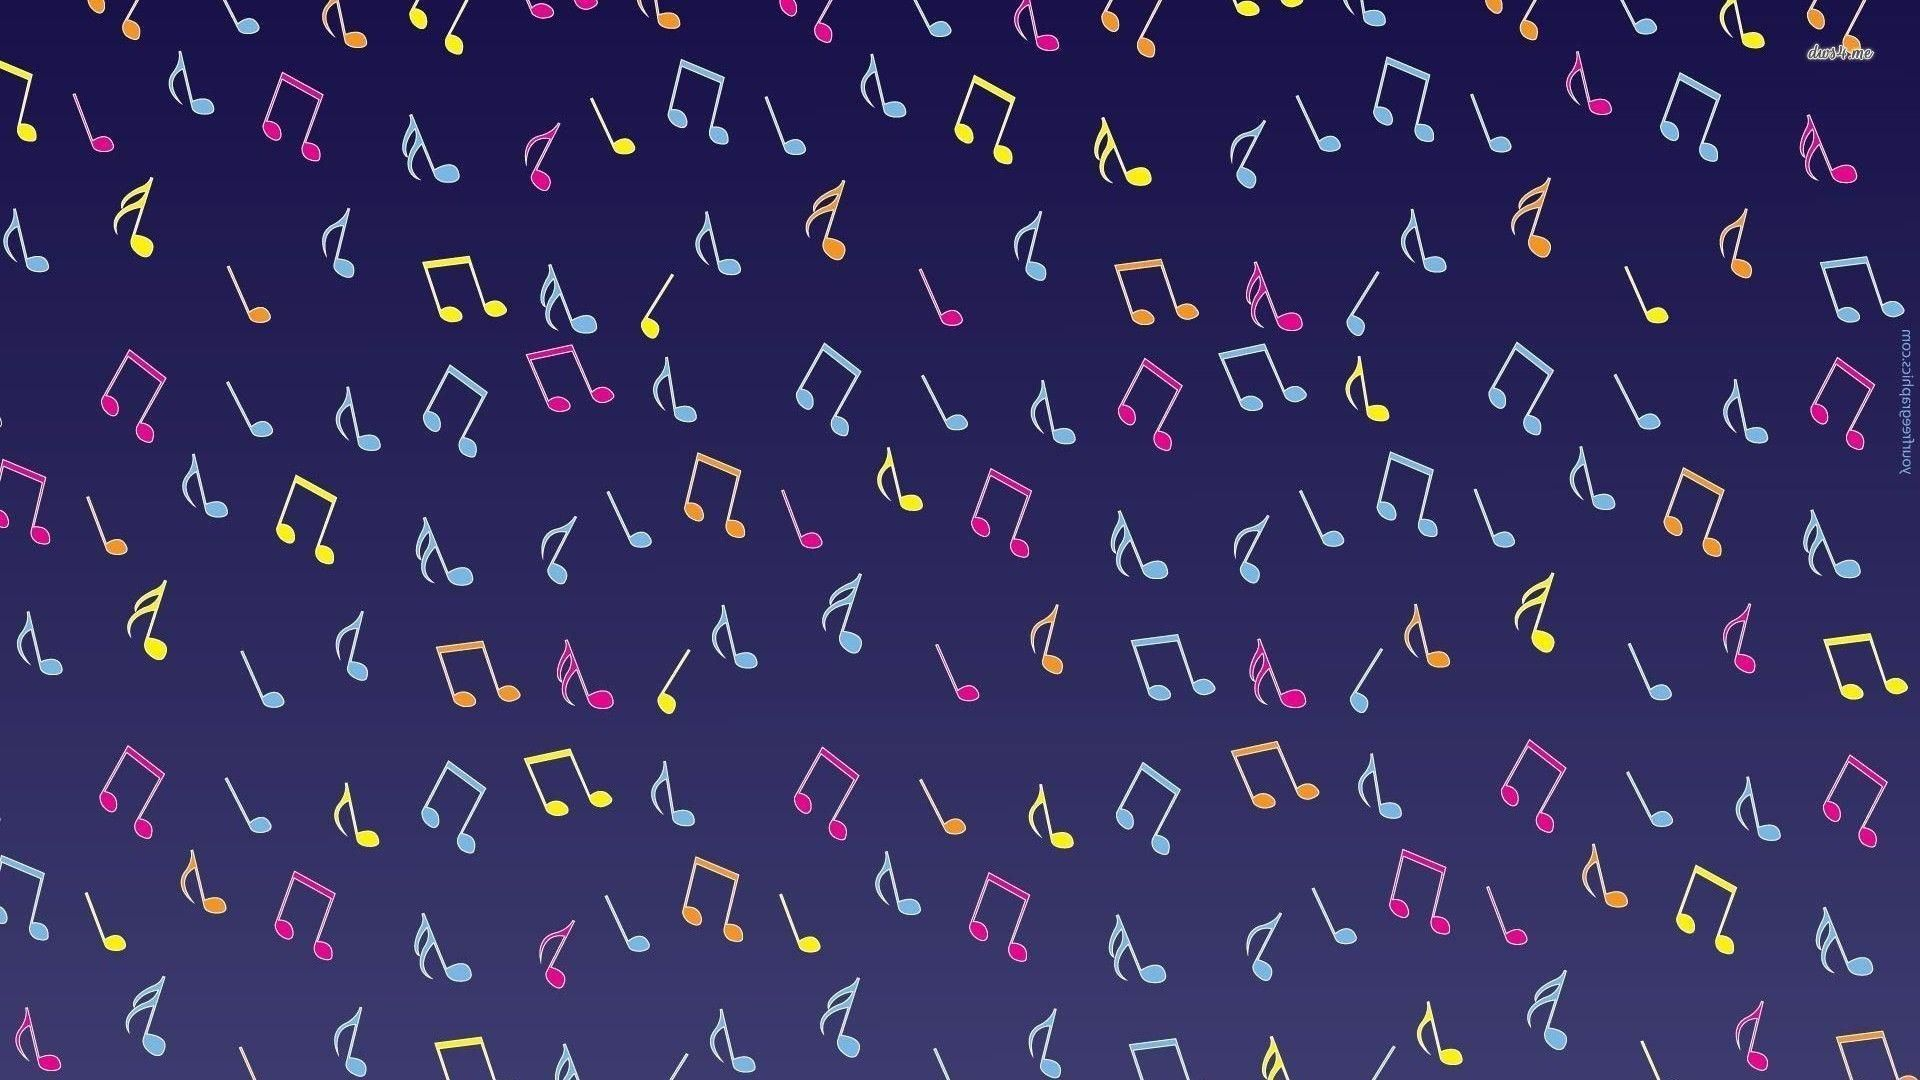 Music Notes Wallpapers  music Music wallpaper 1920x1080